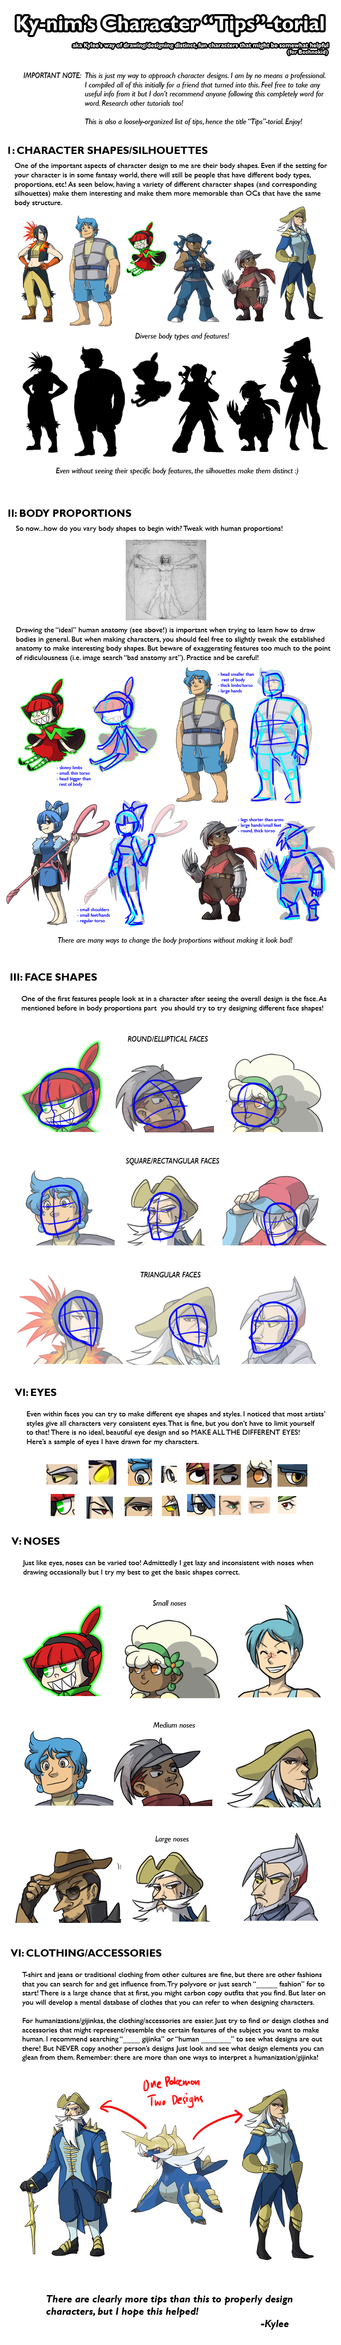 Basic Character Design Tutorial : Tutorial character design by ky nim on deviantart